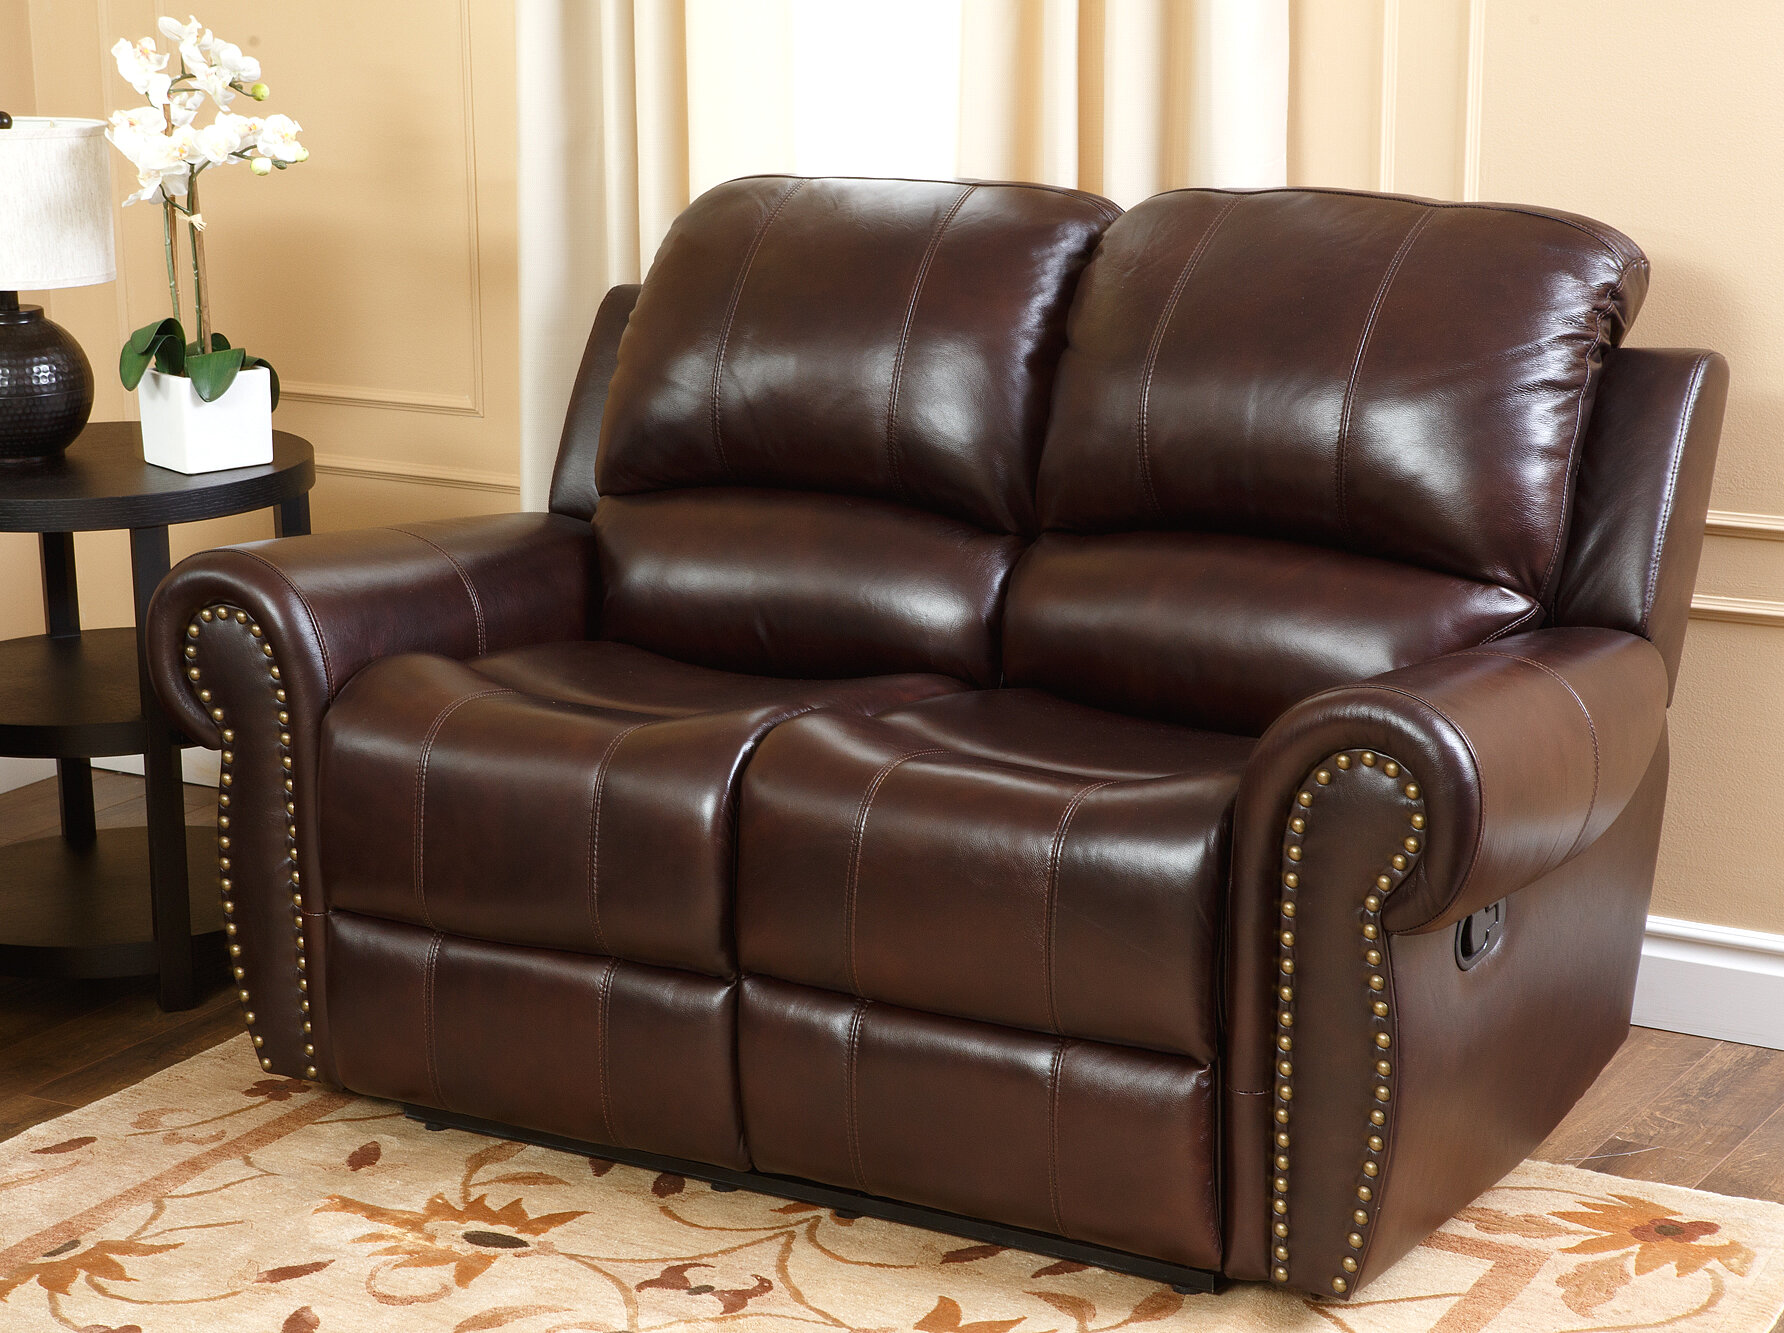 Barnsdale reclining italian leather sofa and loveseat set Reclining leather sofa and loveseat